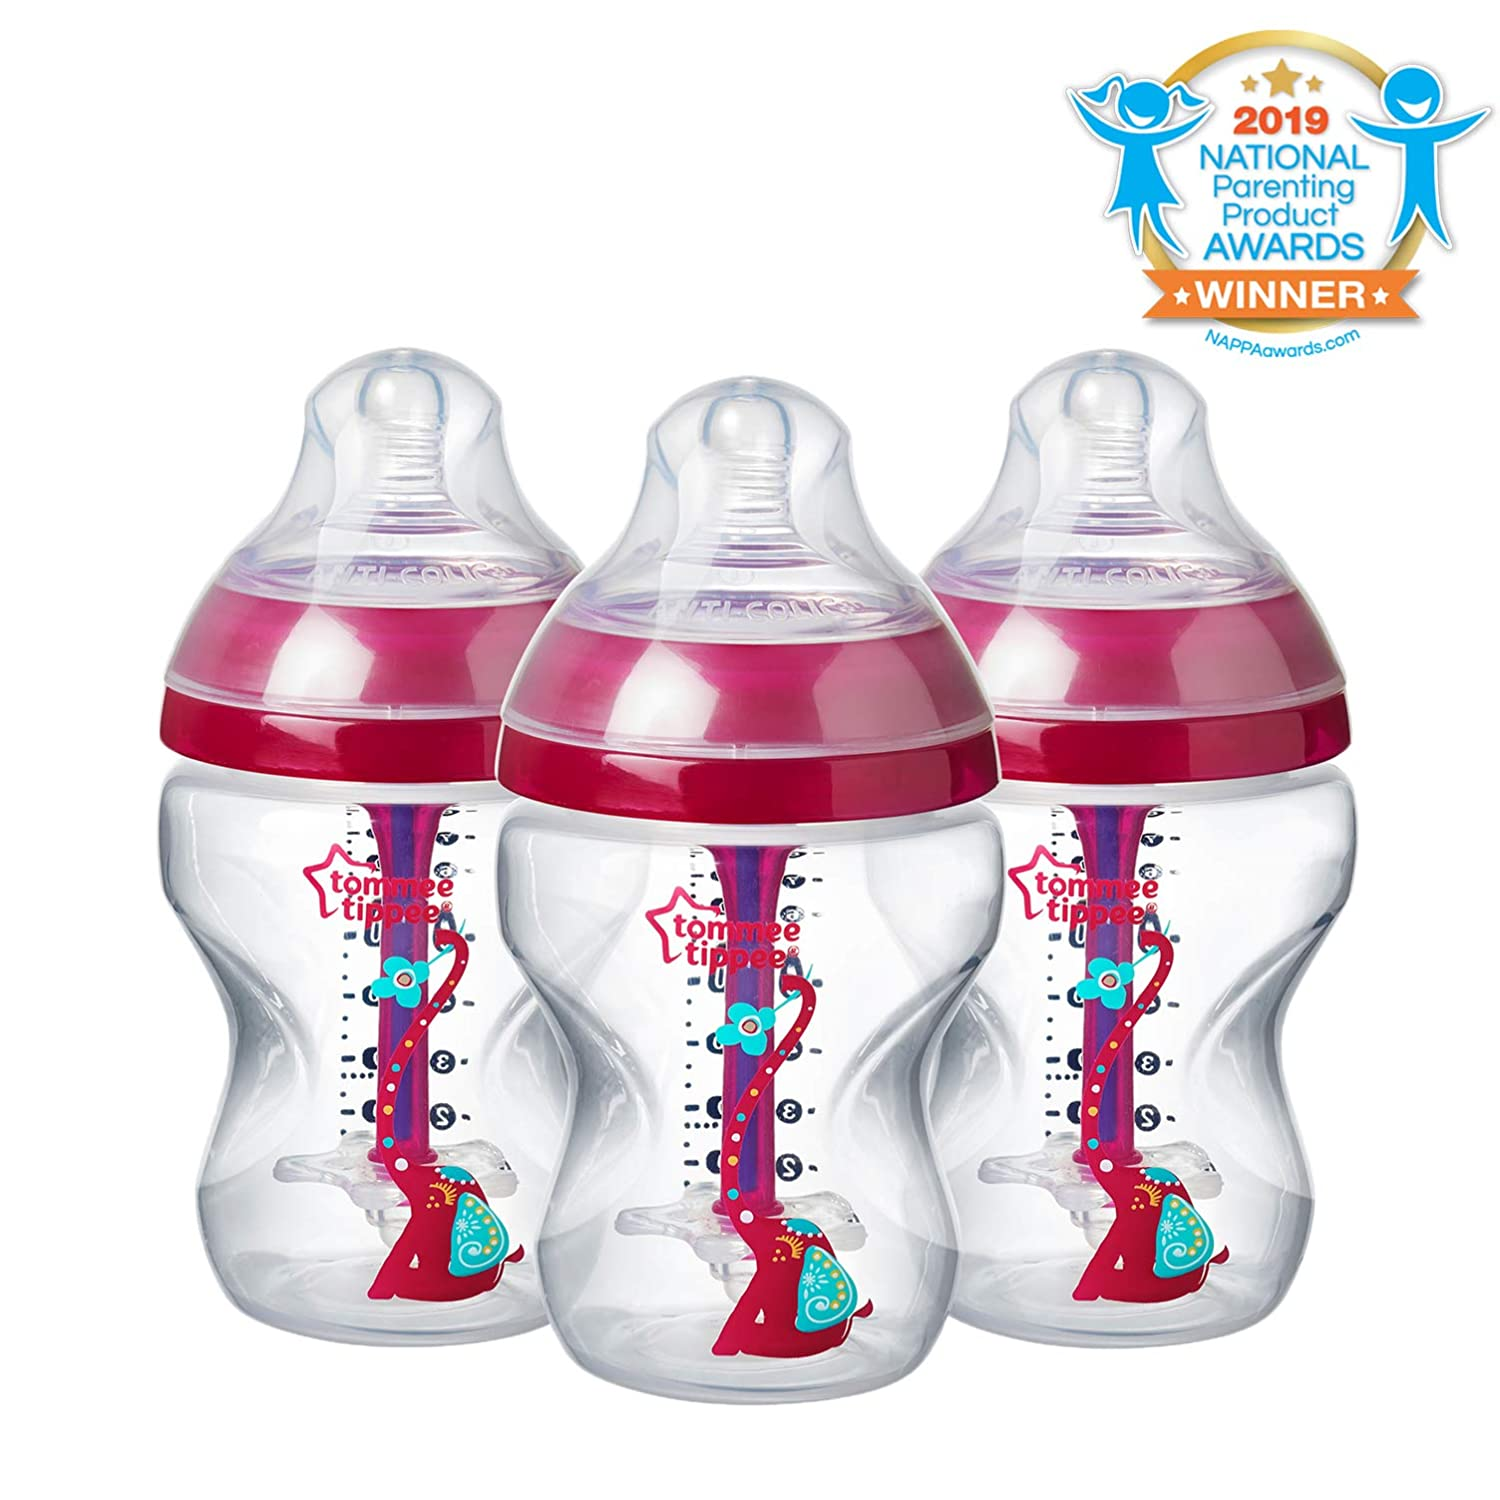 Tommee TippeeDecorated Advanced Anti-Colic Bottles, Breast-Like Slow Flow Nipple, Heat-Sensing Technology, BPA-Free - Pink - 9 Ounce, 3 Count